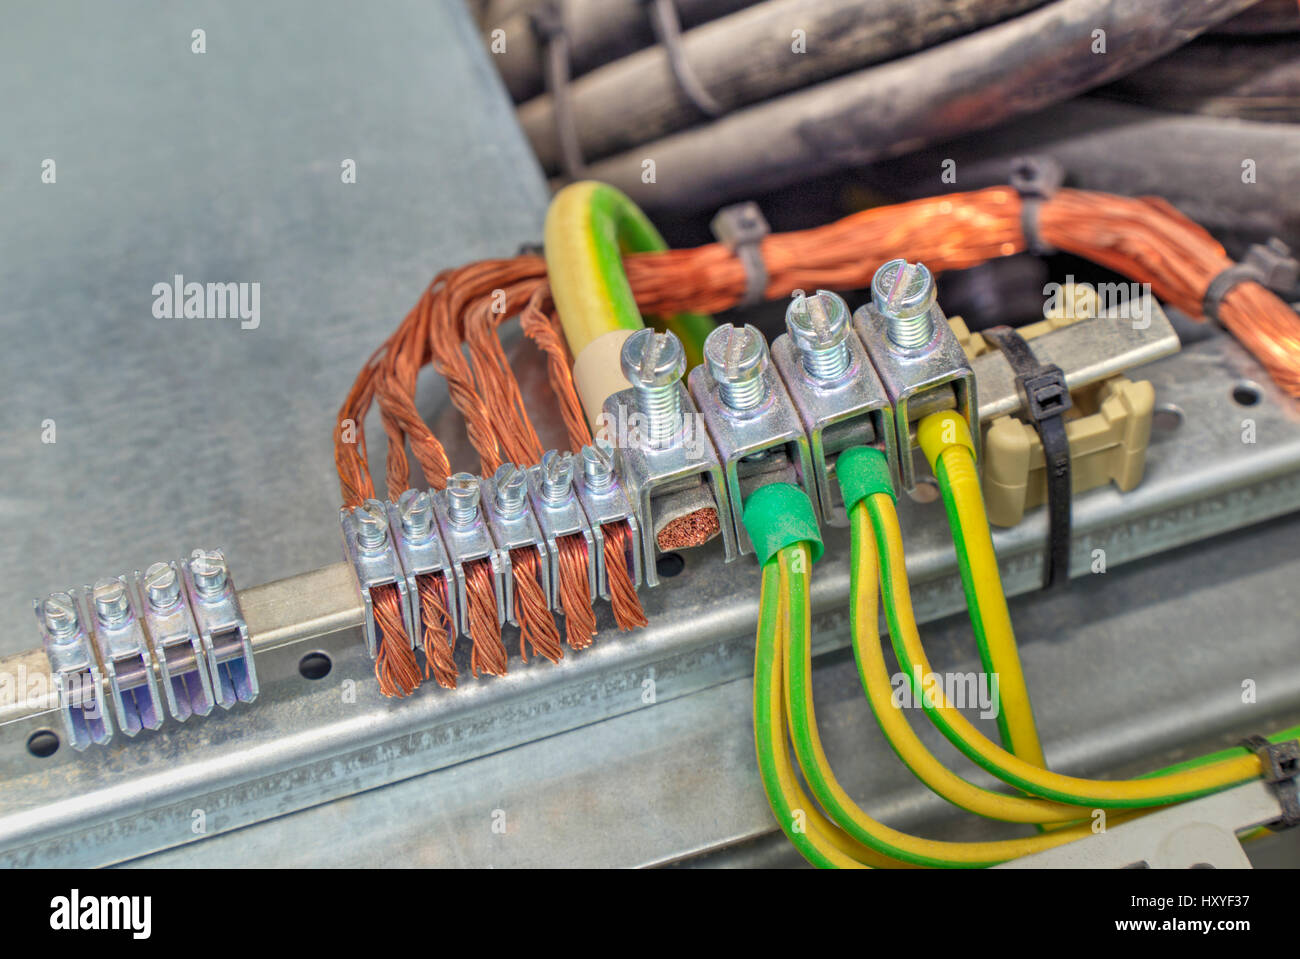 Electric Cable Installation Terminals Stockfotos & Electric Cable ...